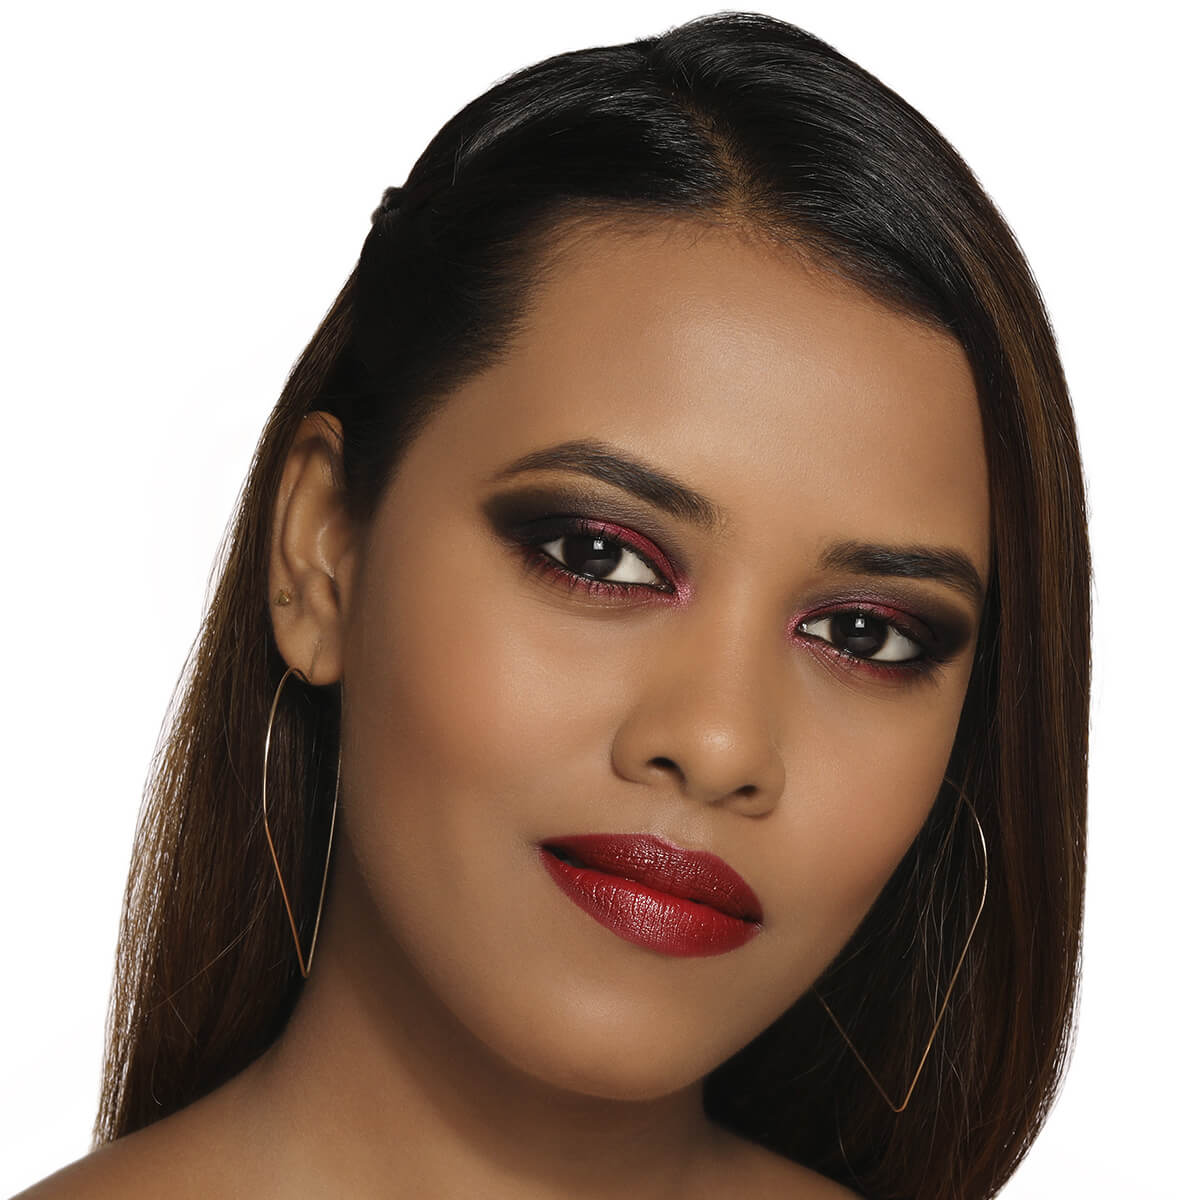 Get Makeup look using MyGlamm's LIT Matte Lipliner Pencil